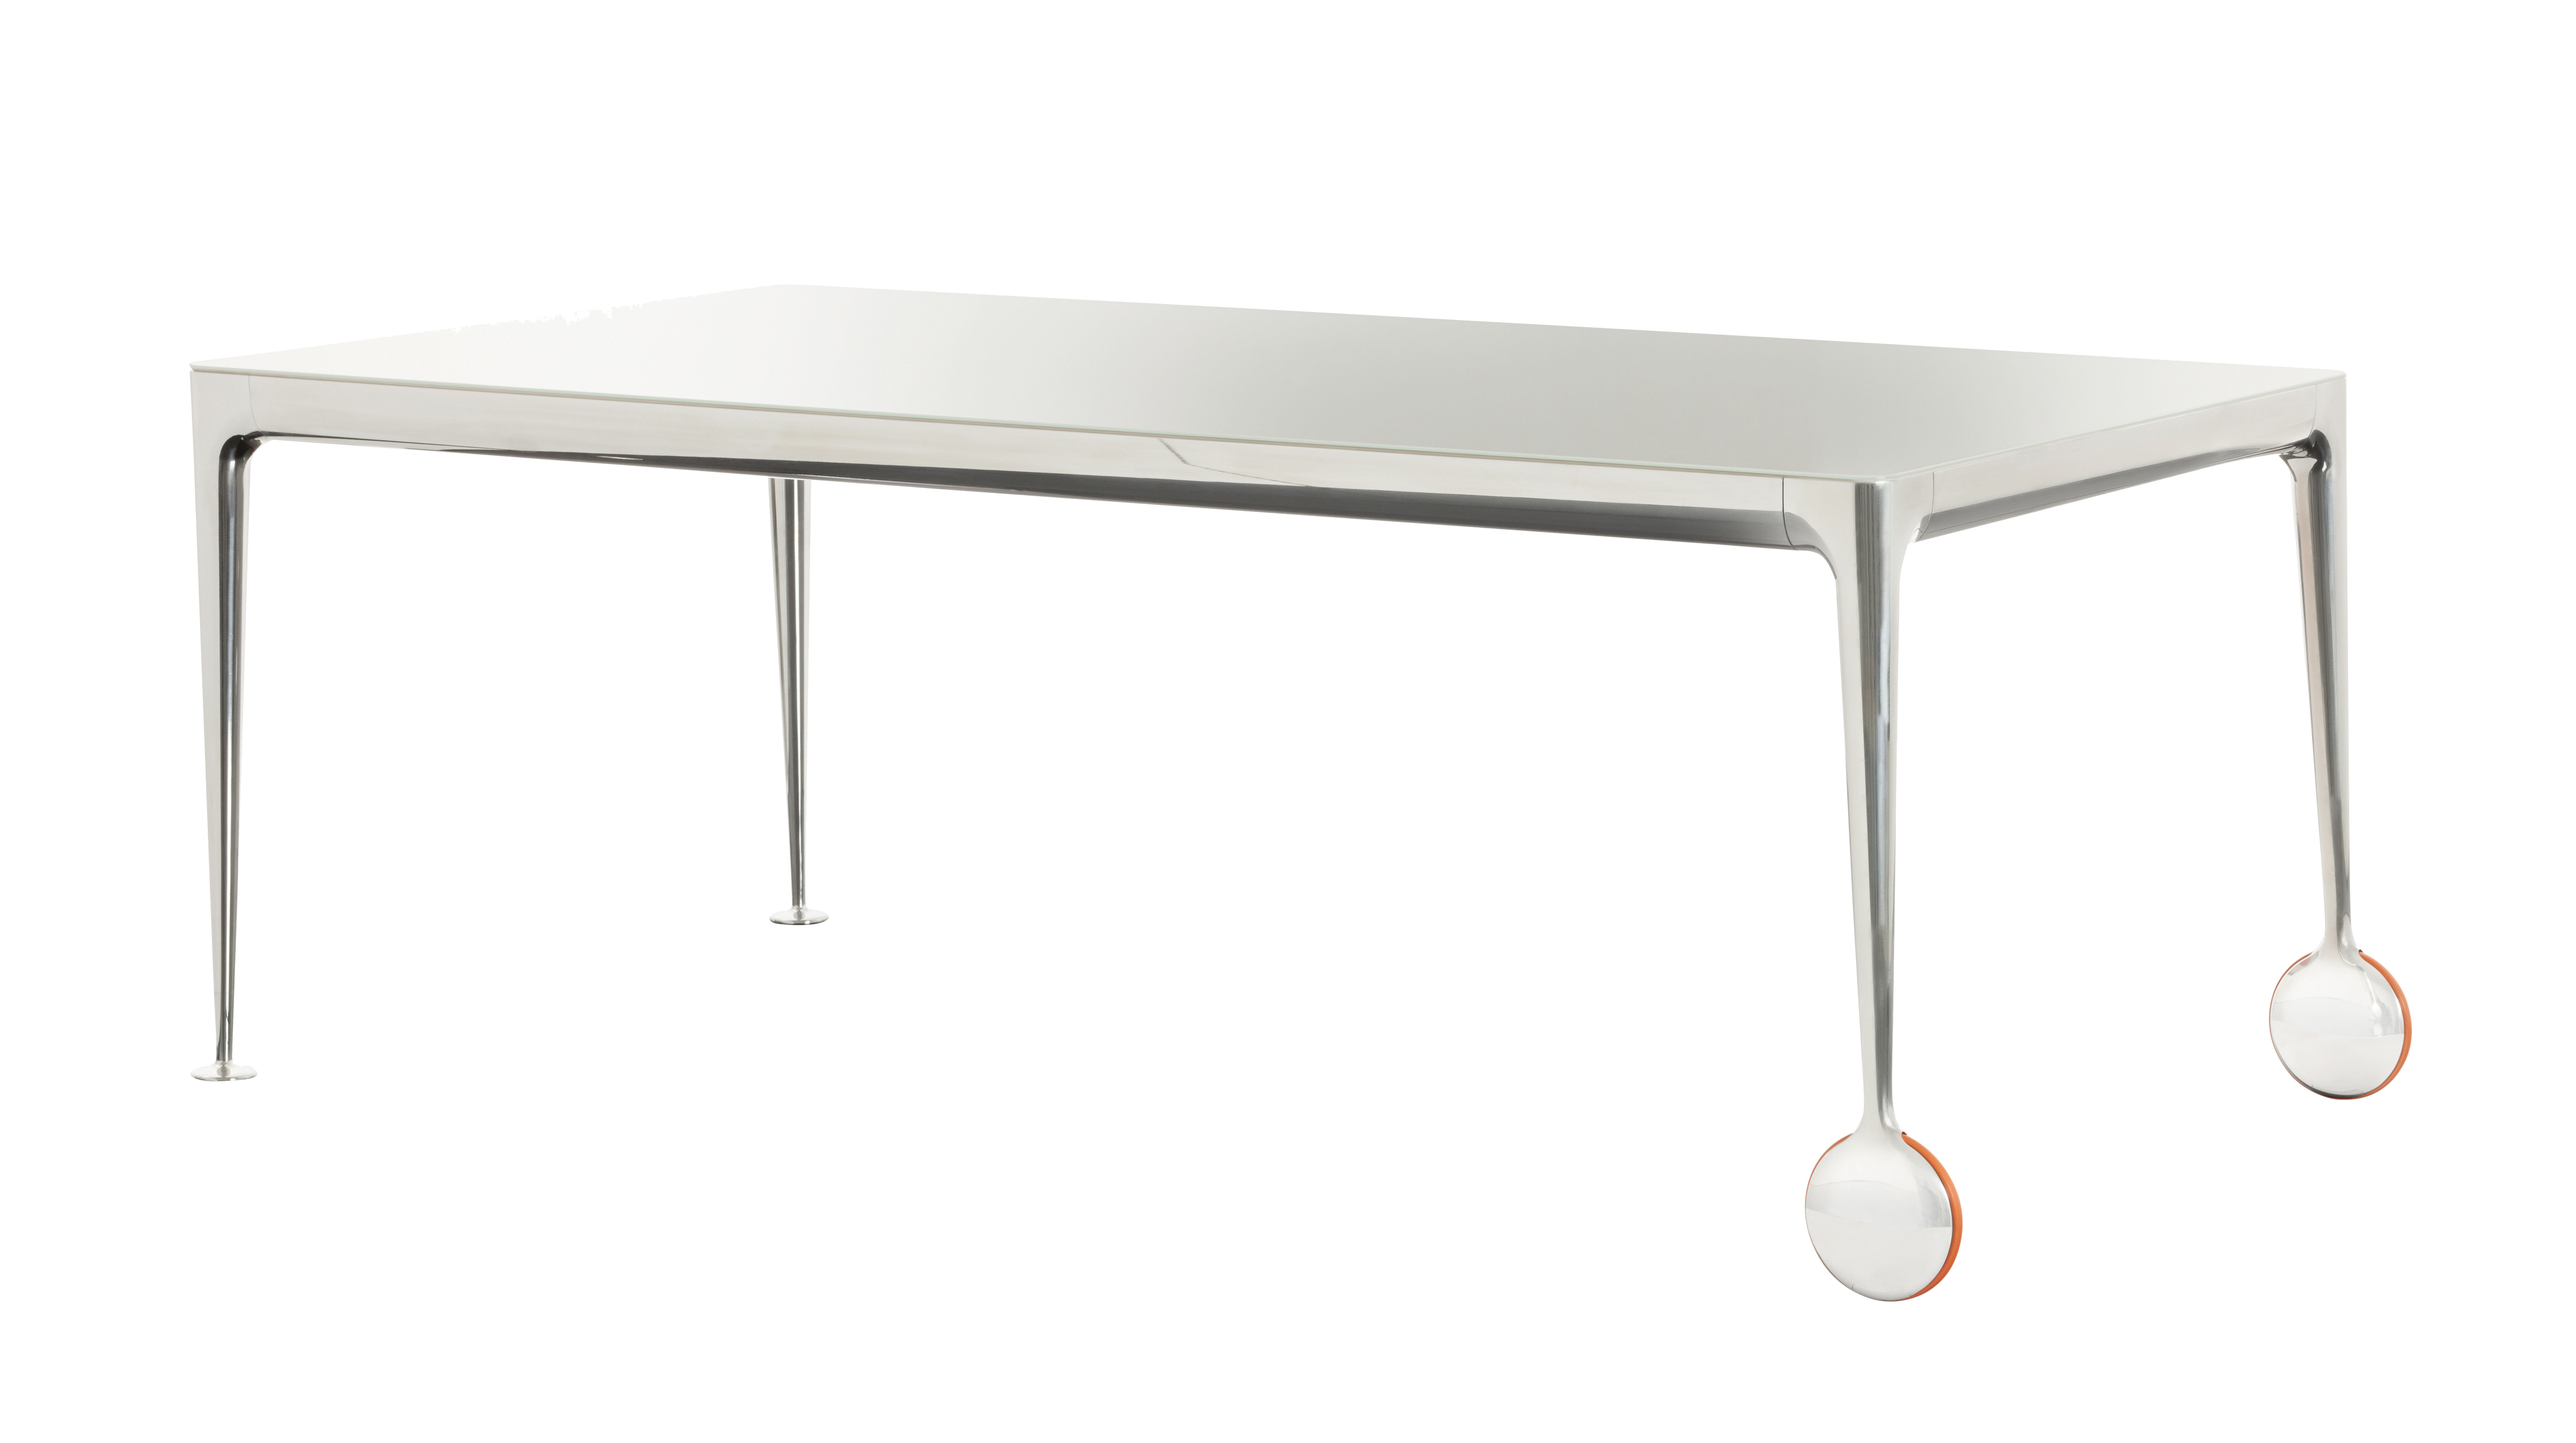 Product selections - Top 100 Furniture/bestseller - Big Will Rectangular table - 200 x 100 cm by Magis - White top / Polished alu legs - Polished cast aluminium, Rubber, Soak glass